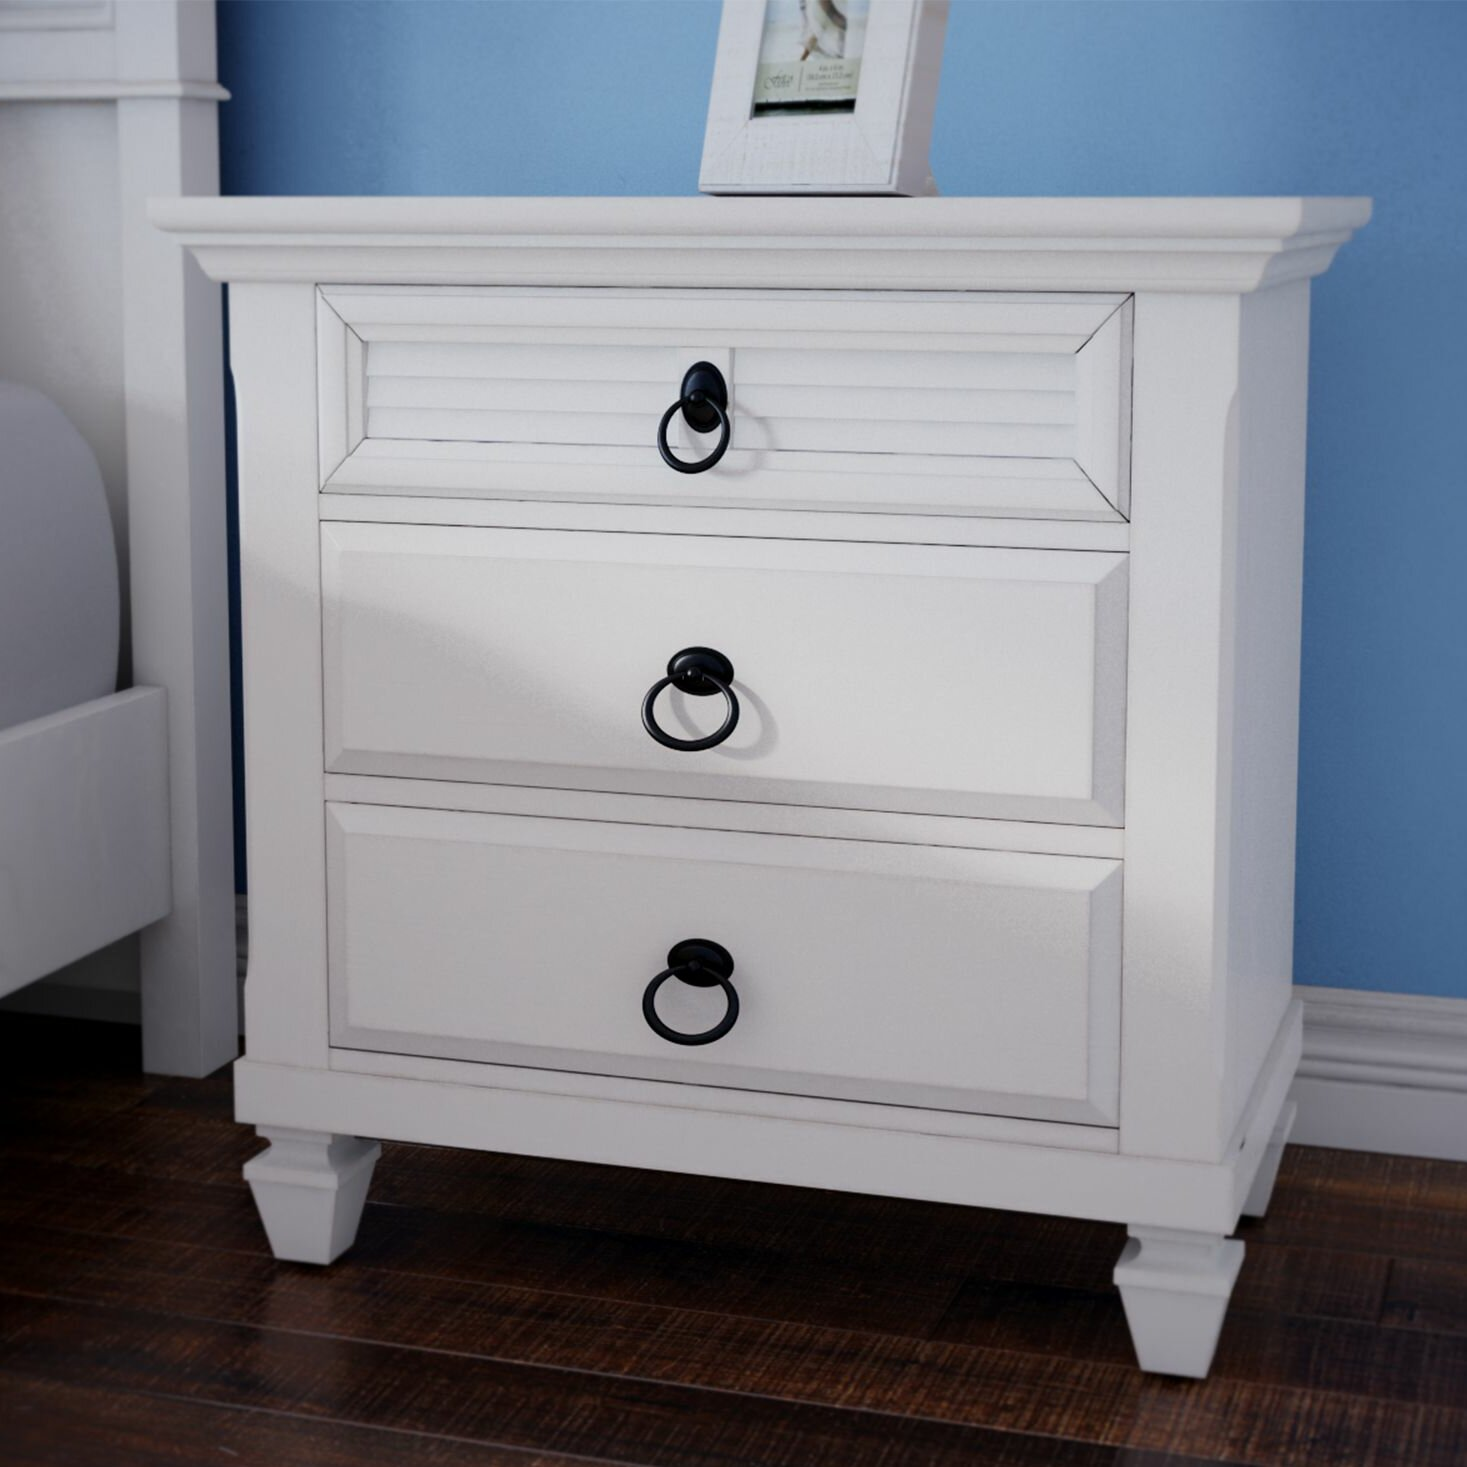 Small Hickory White Table With 3 Drawers ~ Beachcrest home norfolk drawer nightstand reviews